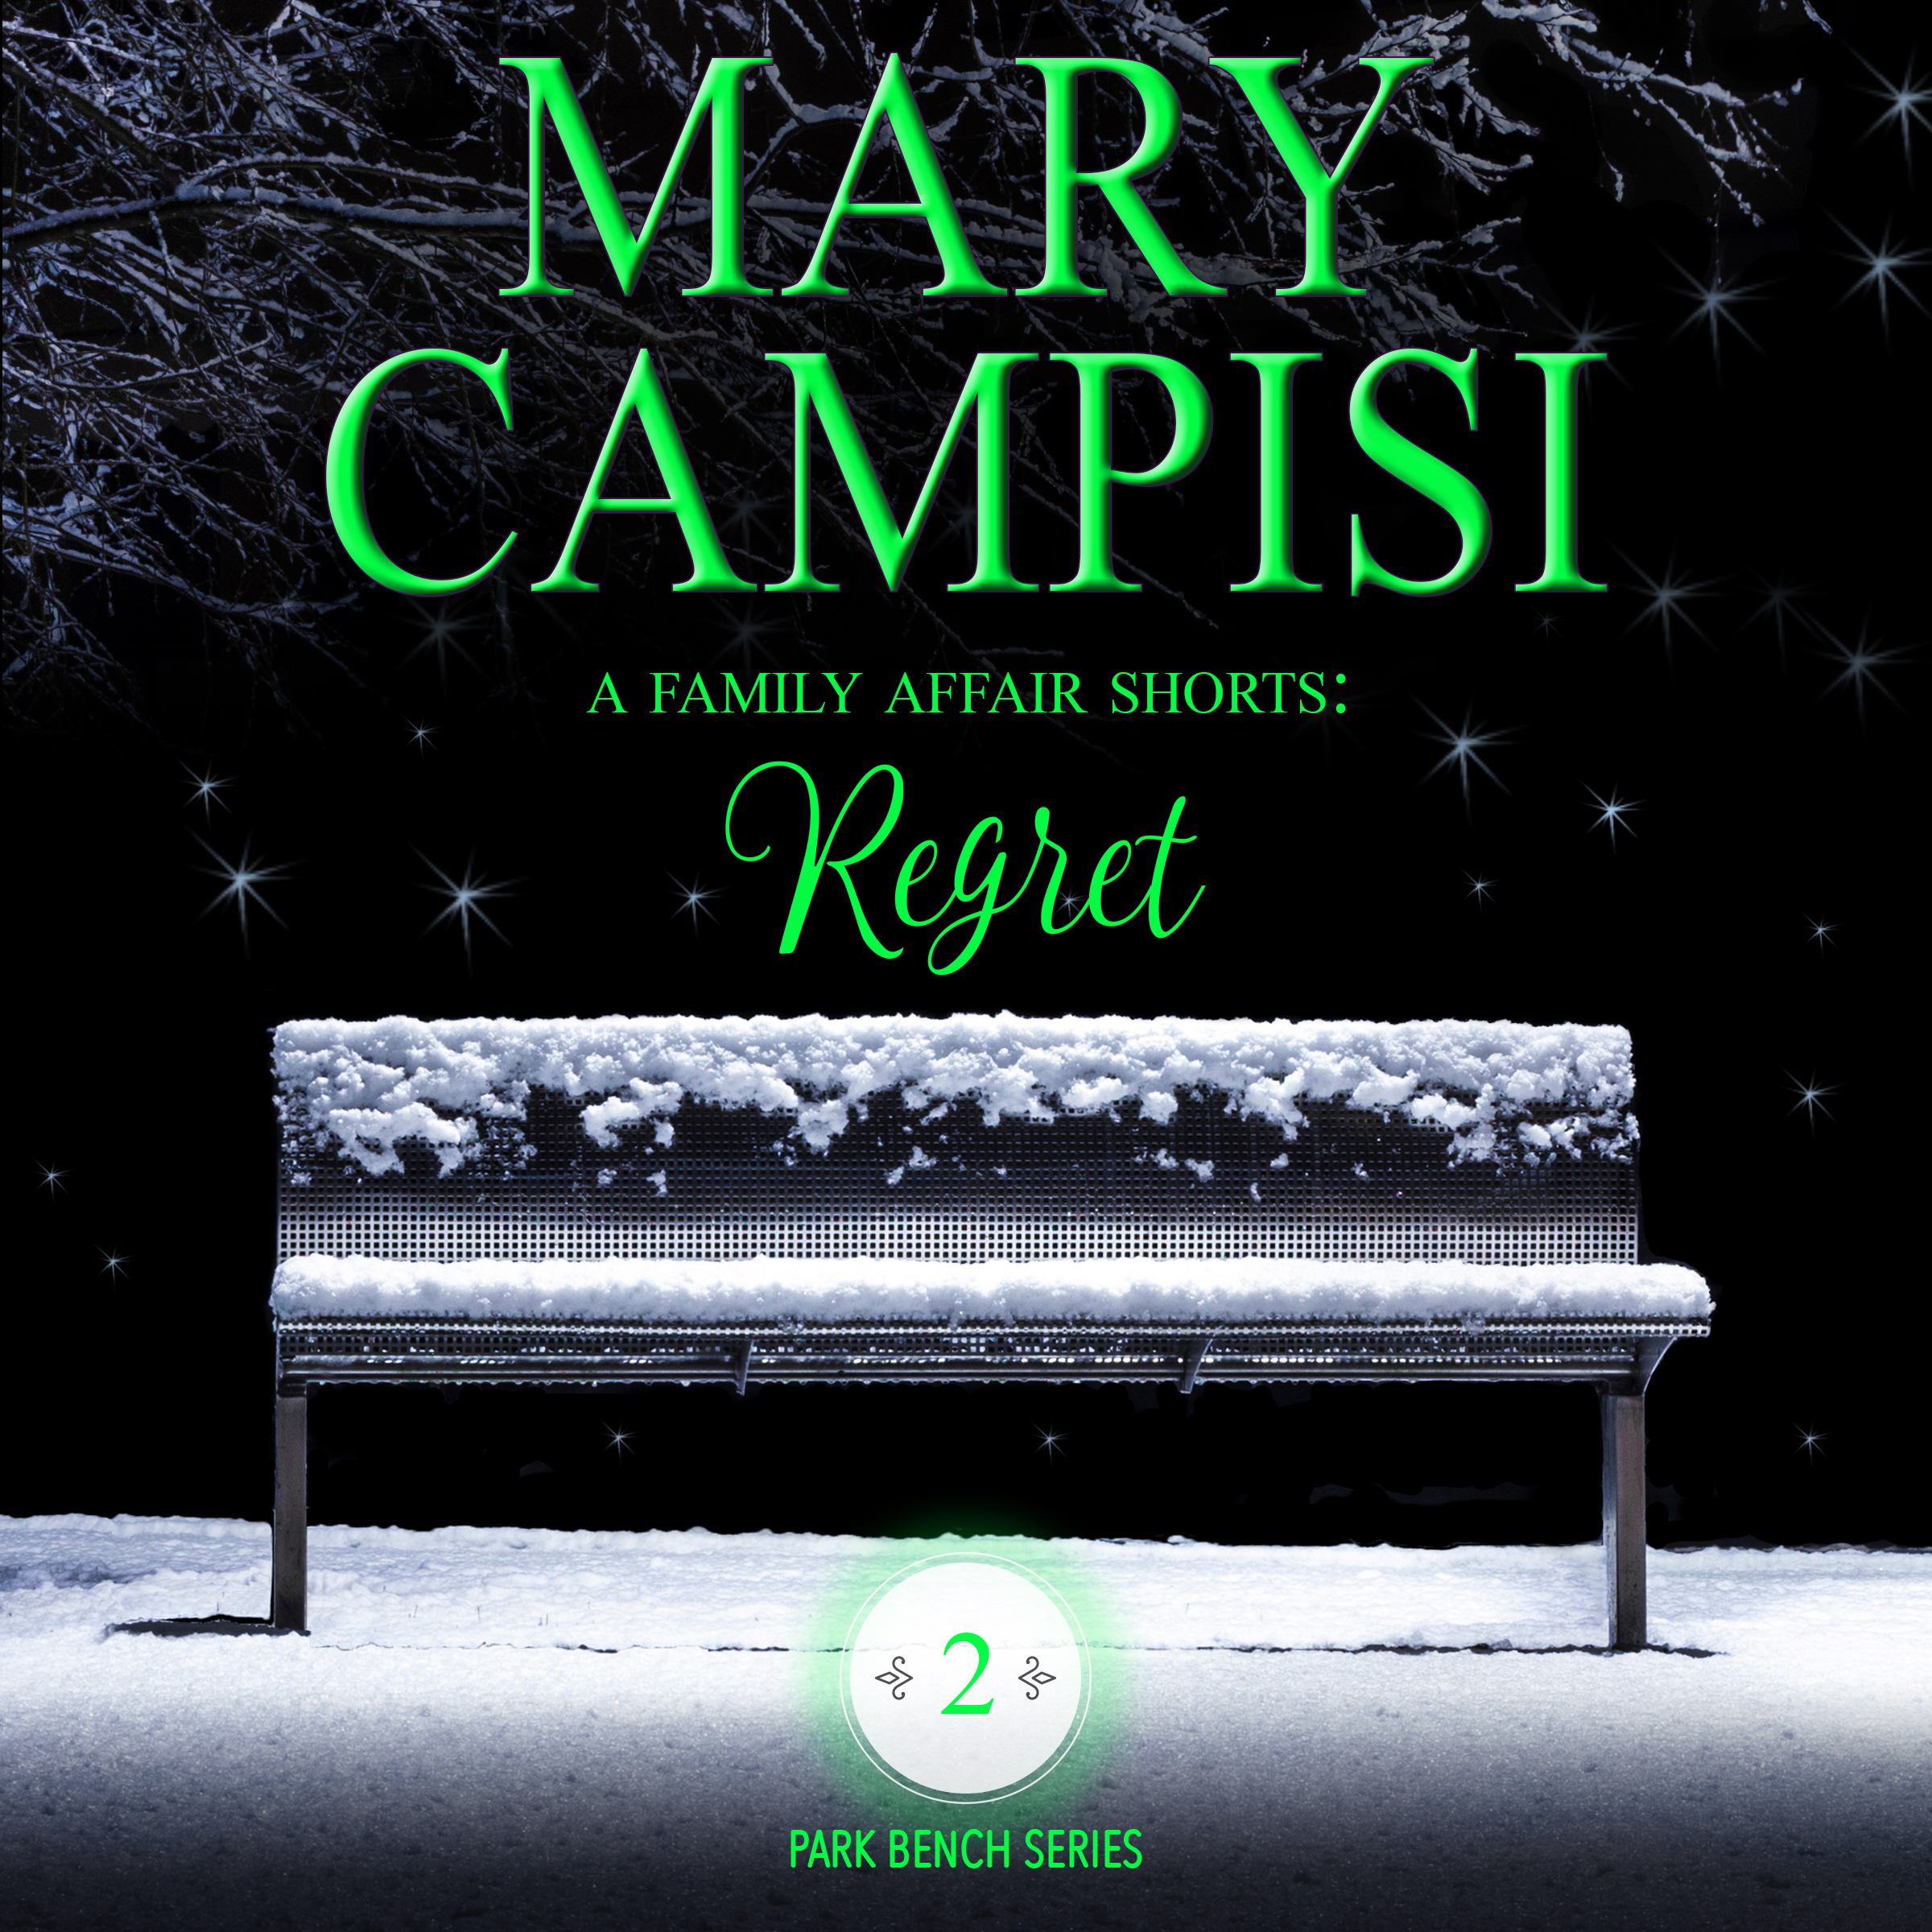 A Family Affair Shorts: Regret audiobook by Mary Campisi